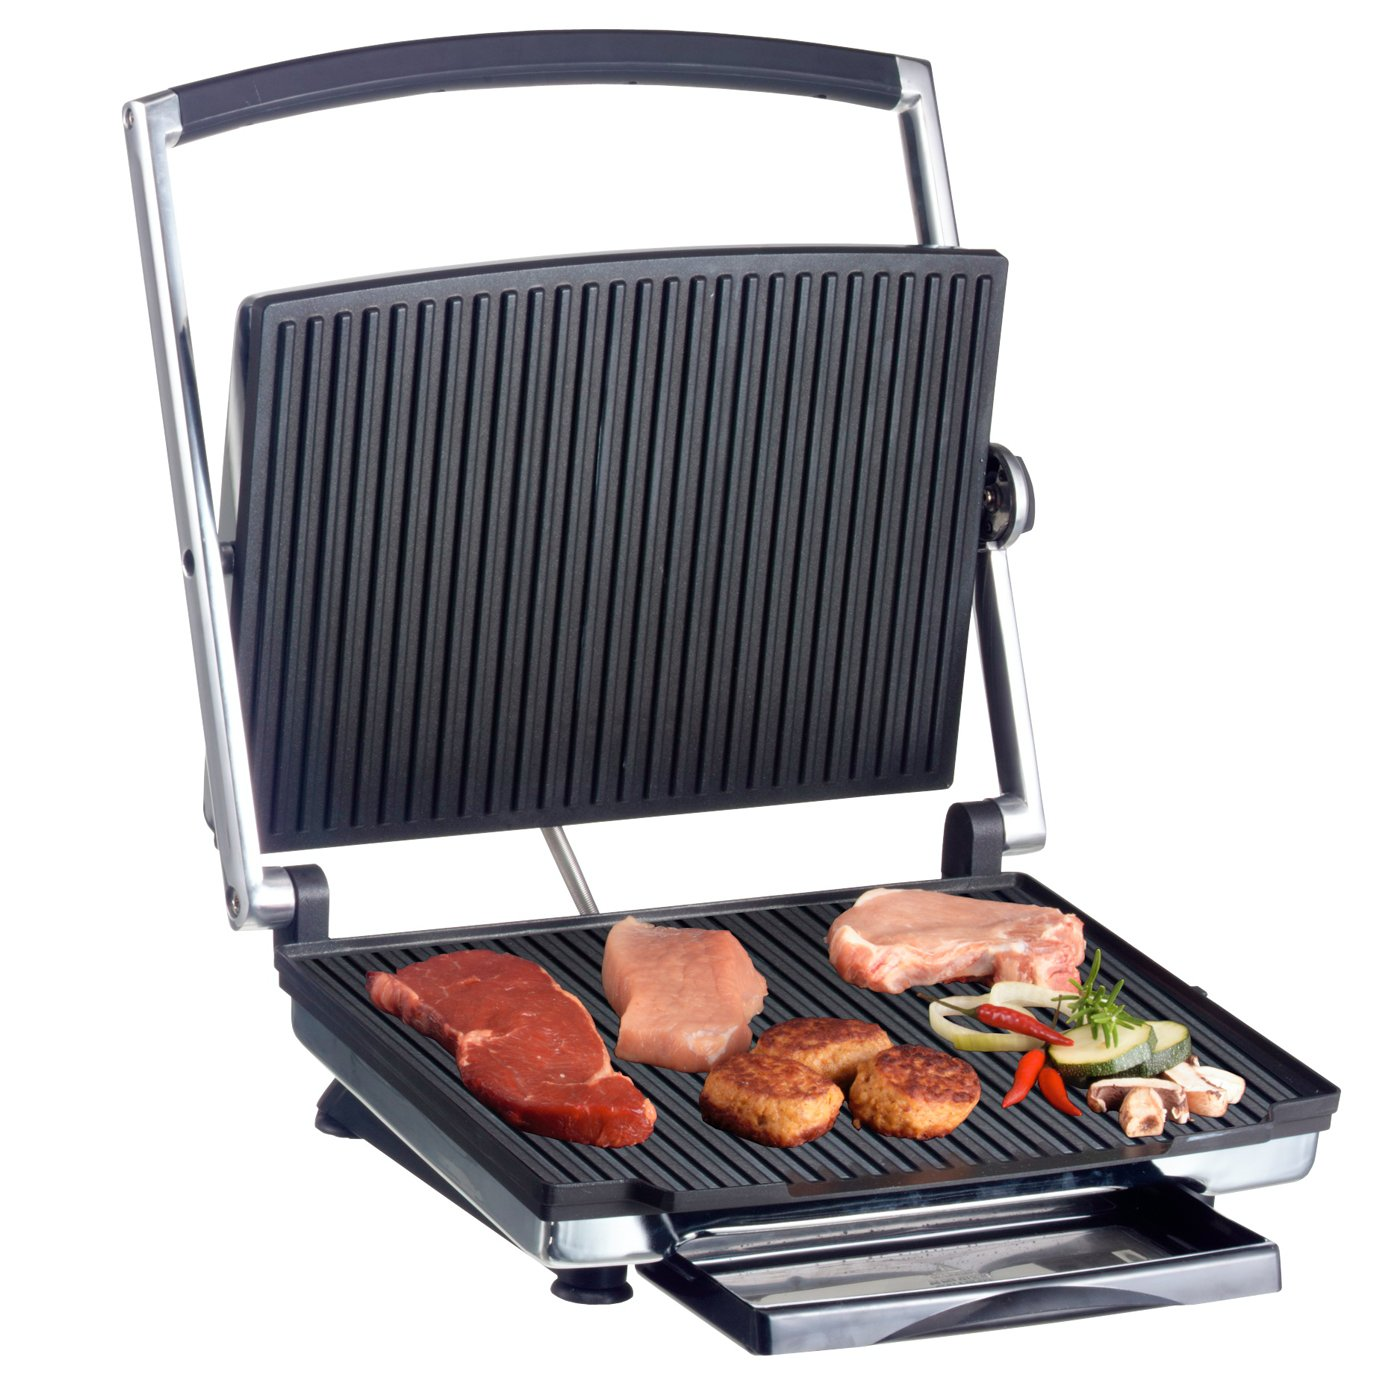 BEEM Germany B8.001 Cater Pro V2 - Parrilla de contacto y sandwichera,Cromo (Chrome Finish)